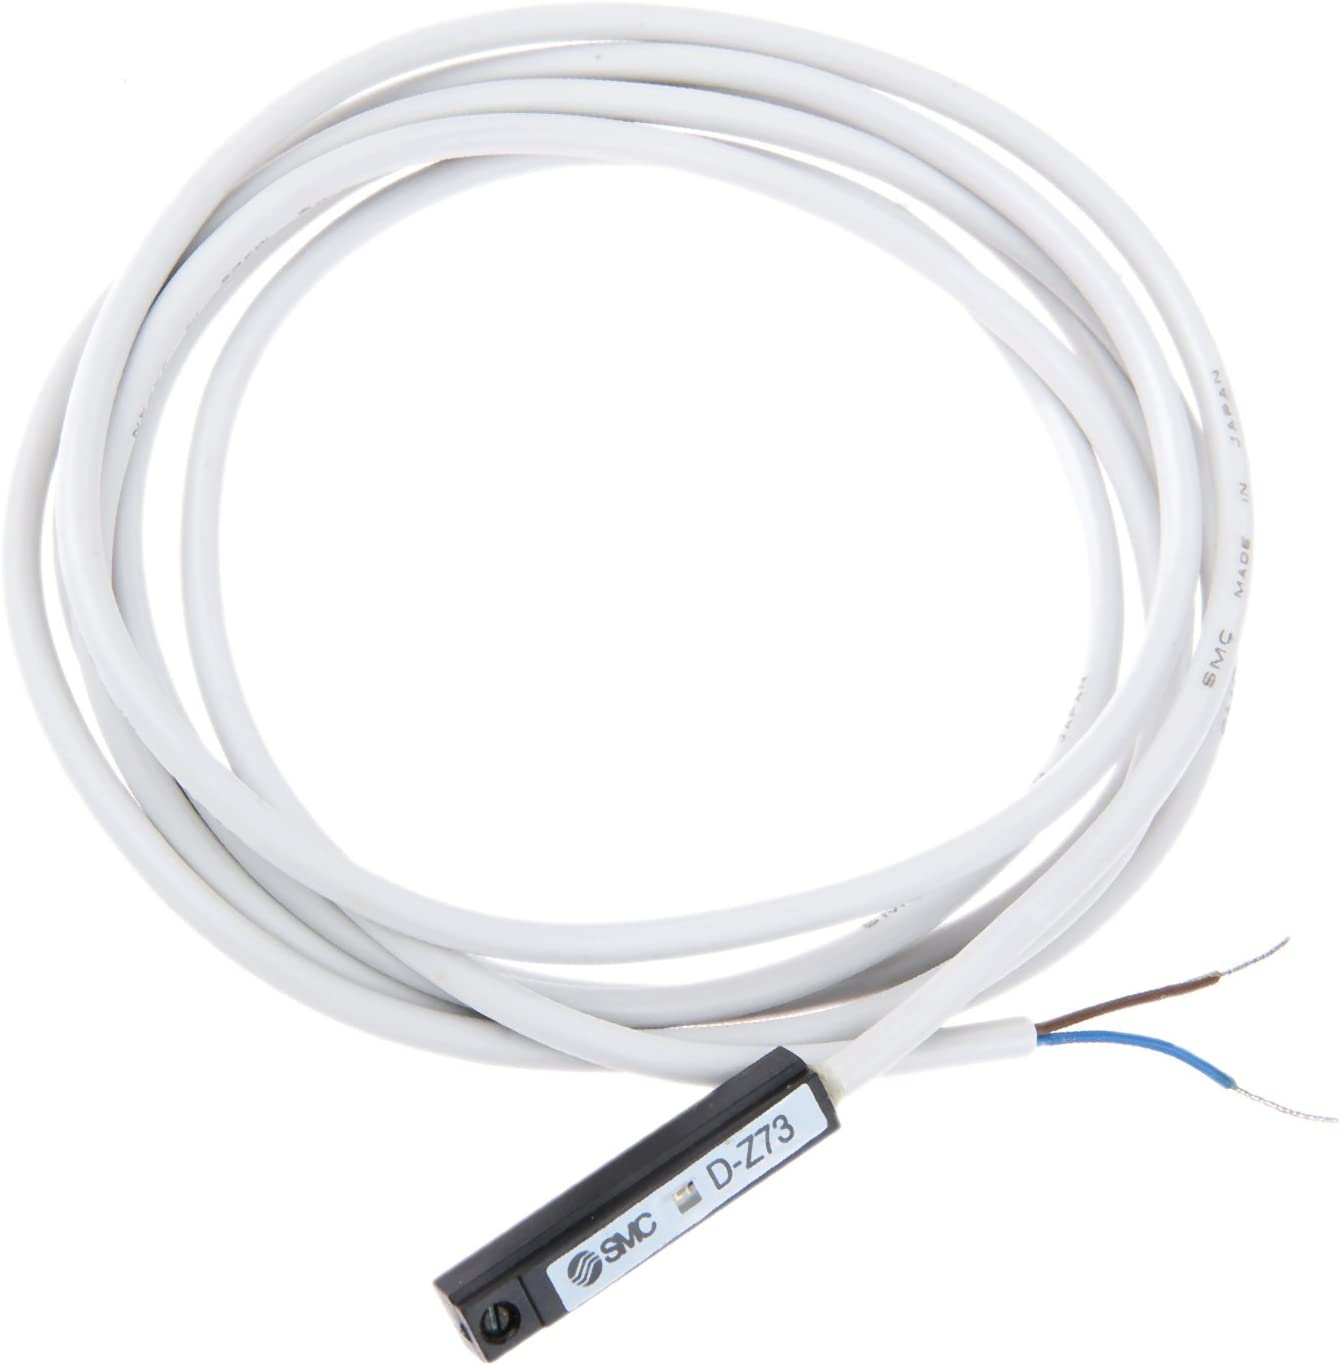 SMC D-90 Reed Switch Sensor Free Shipping! New